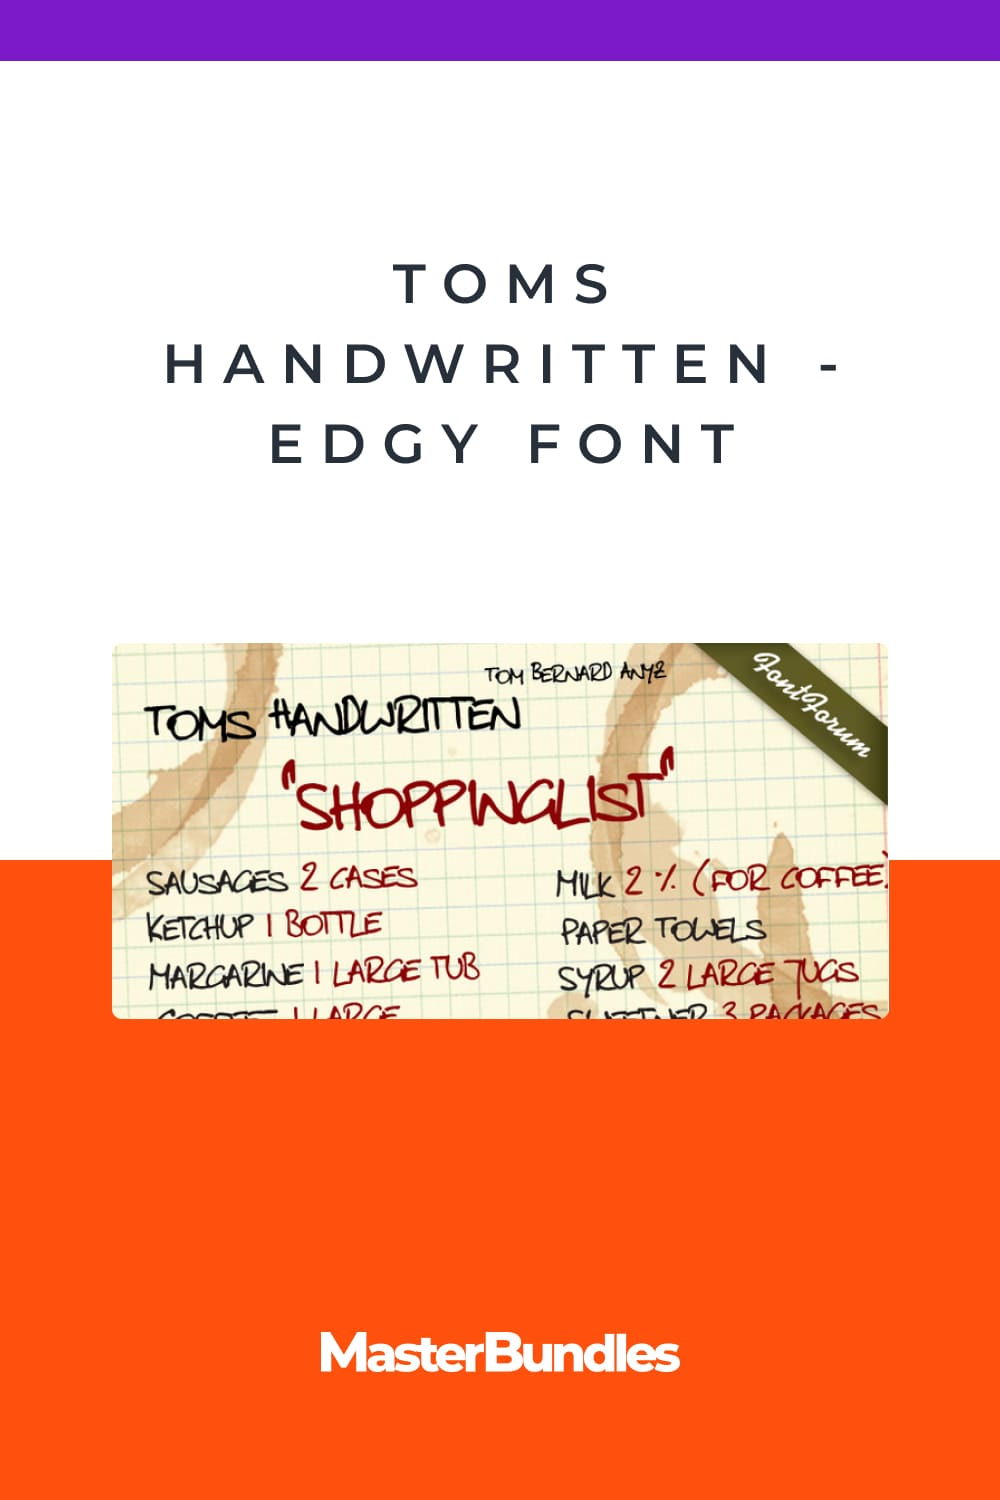 This handwritten font was brought to our attention by one of our customers.